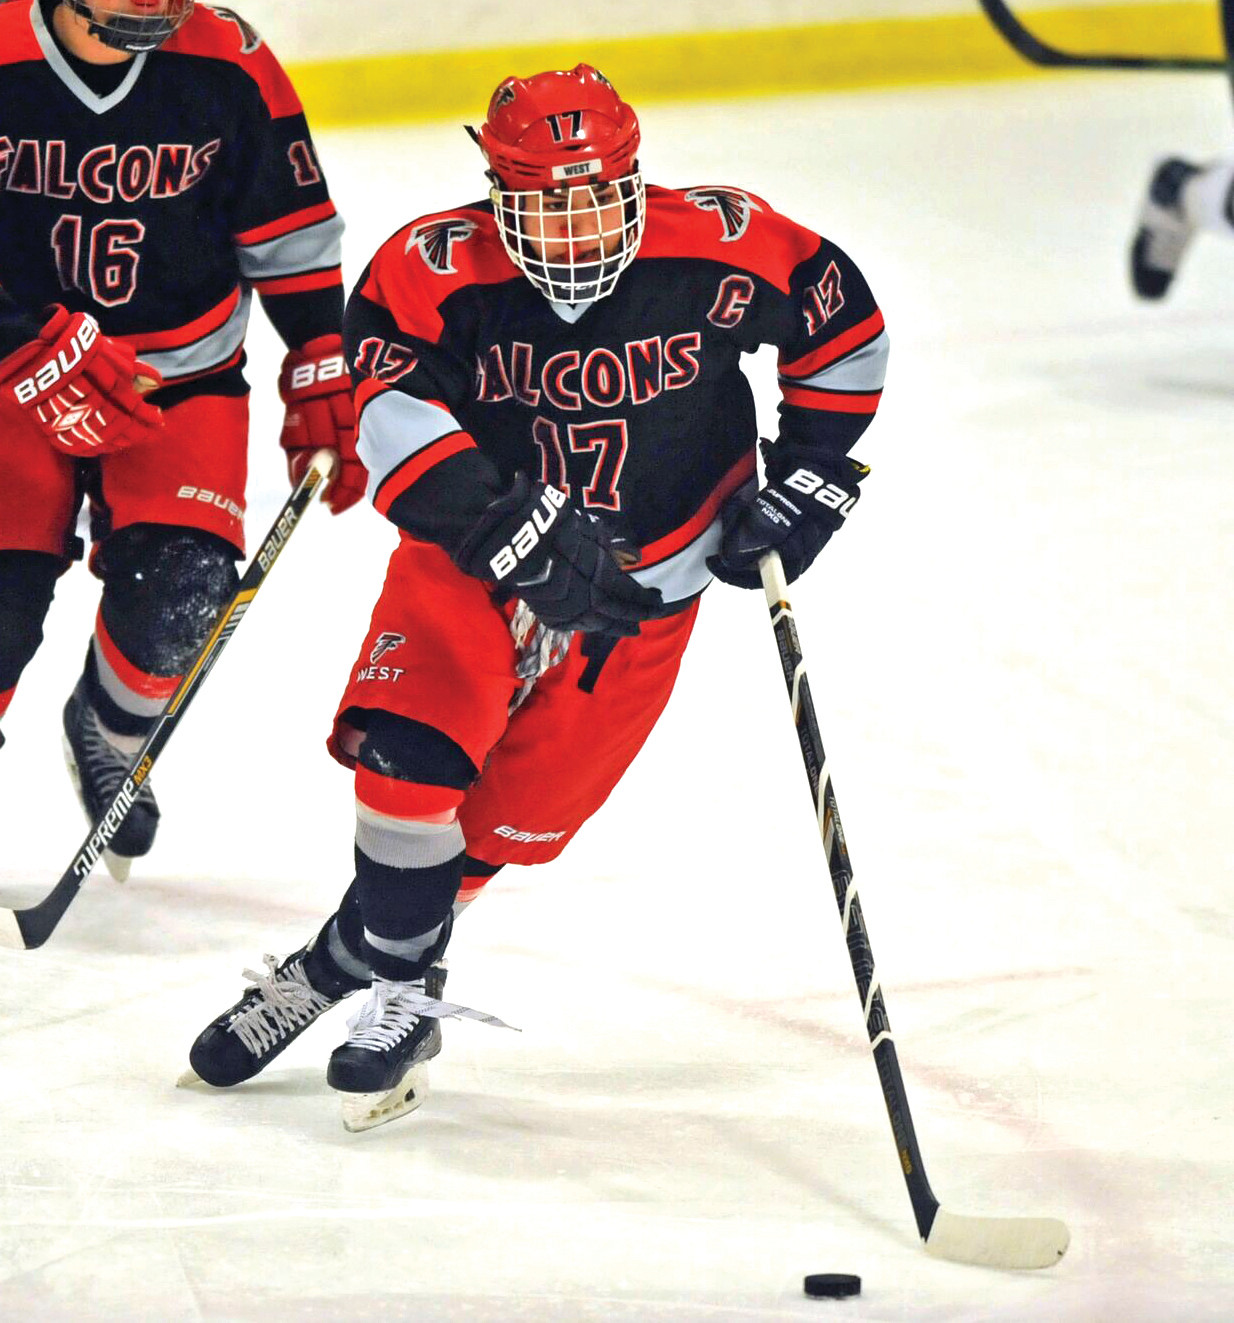 Jacob Pagnozzi skates the puck out of his defensive zone.